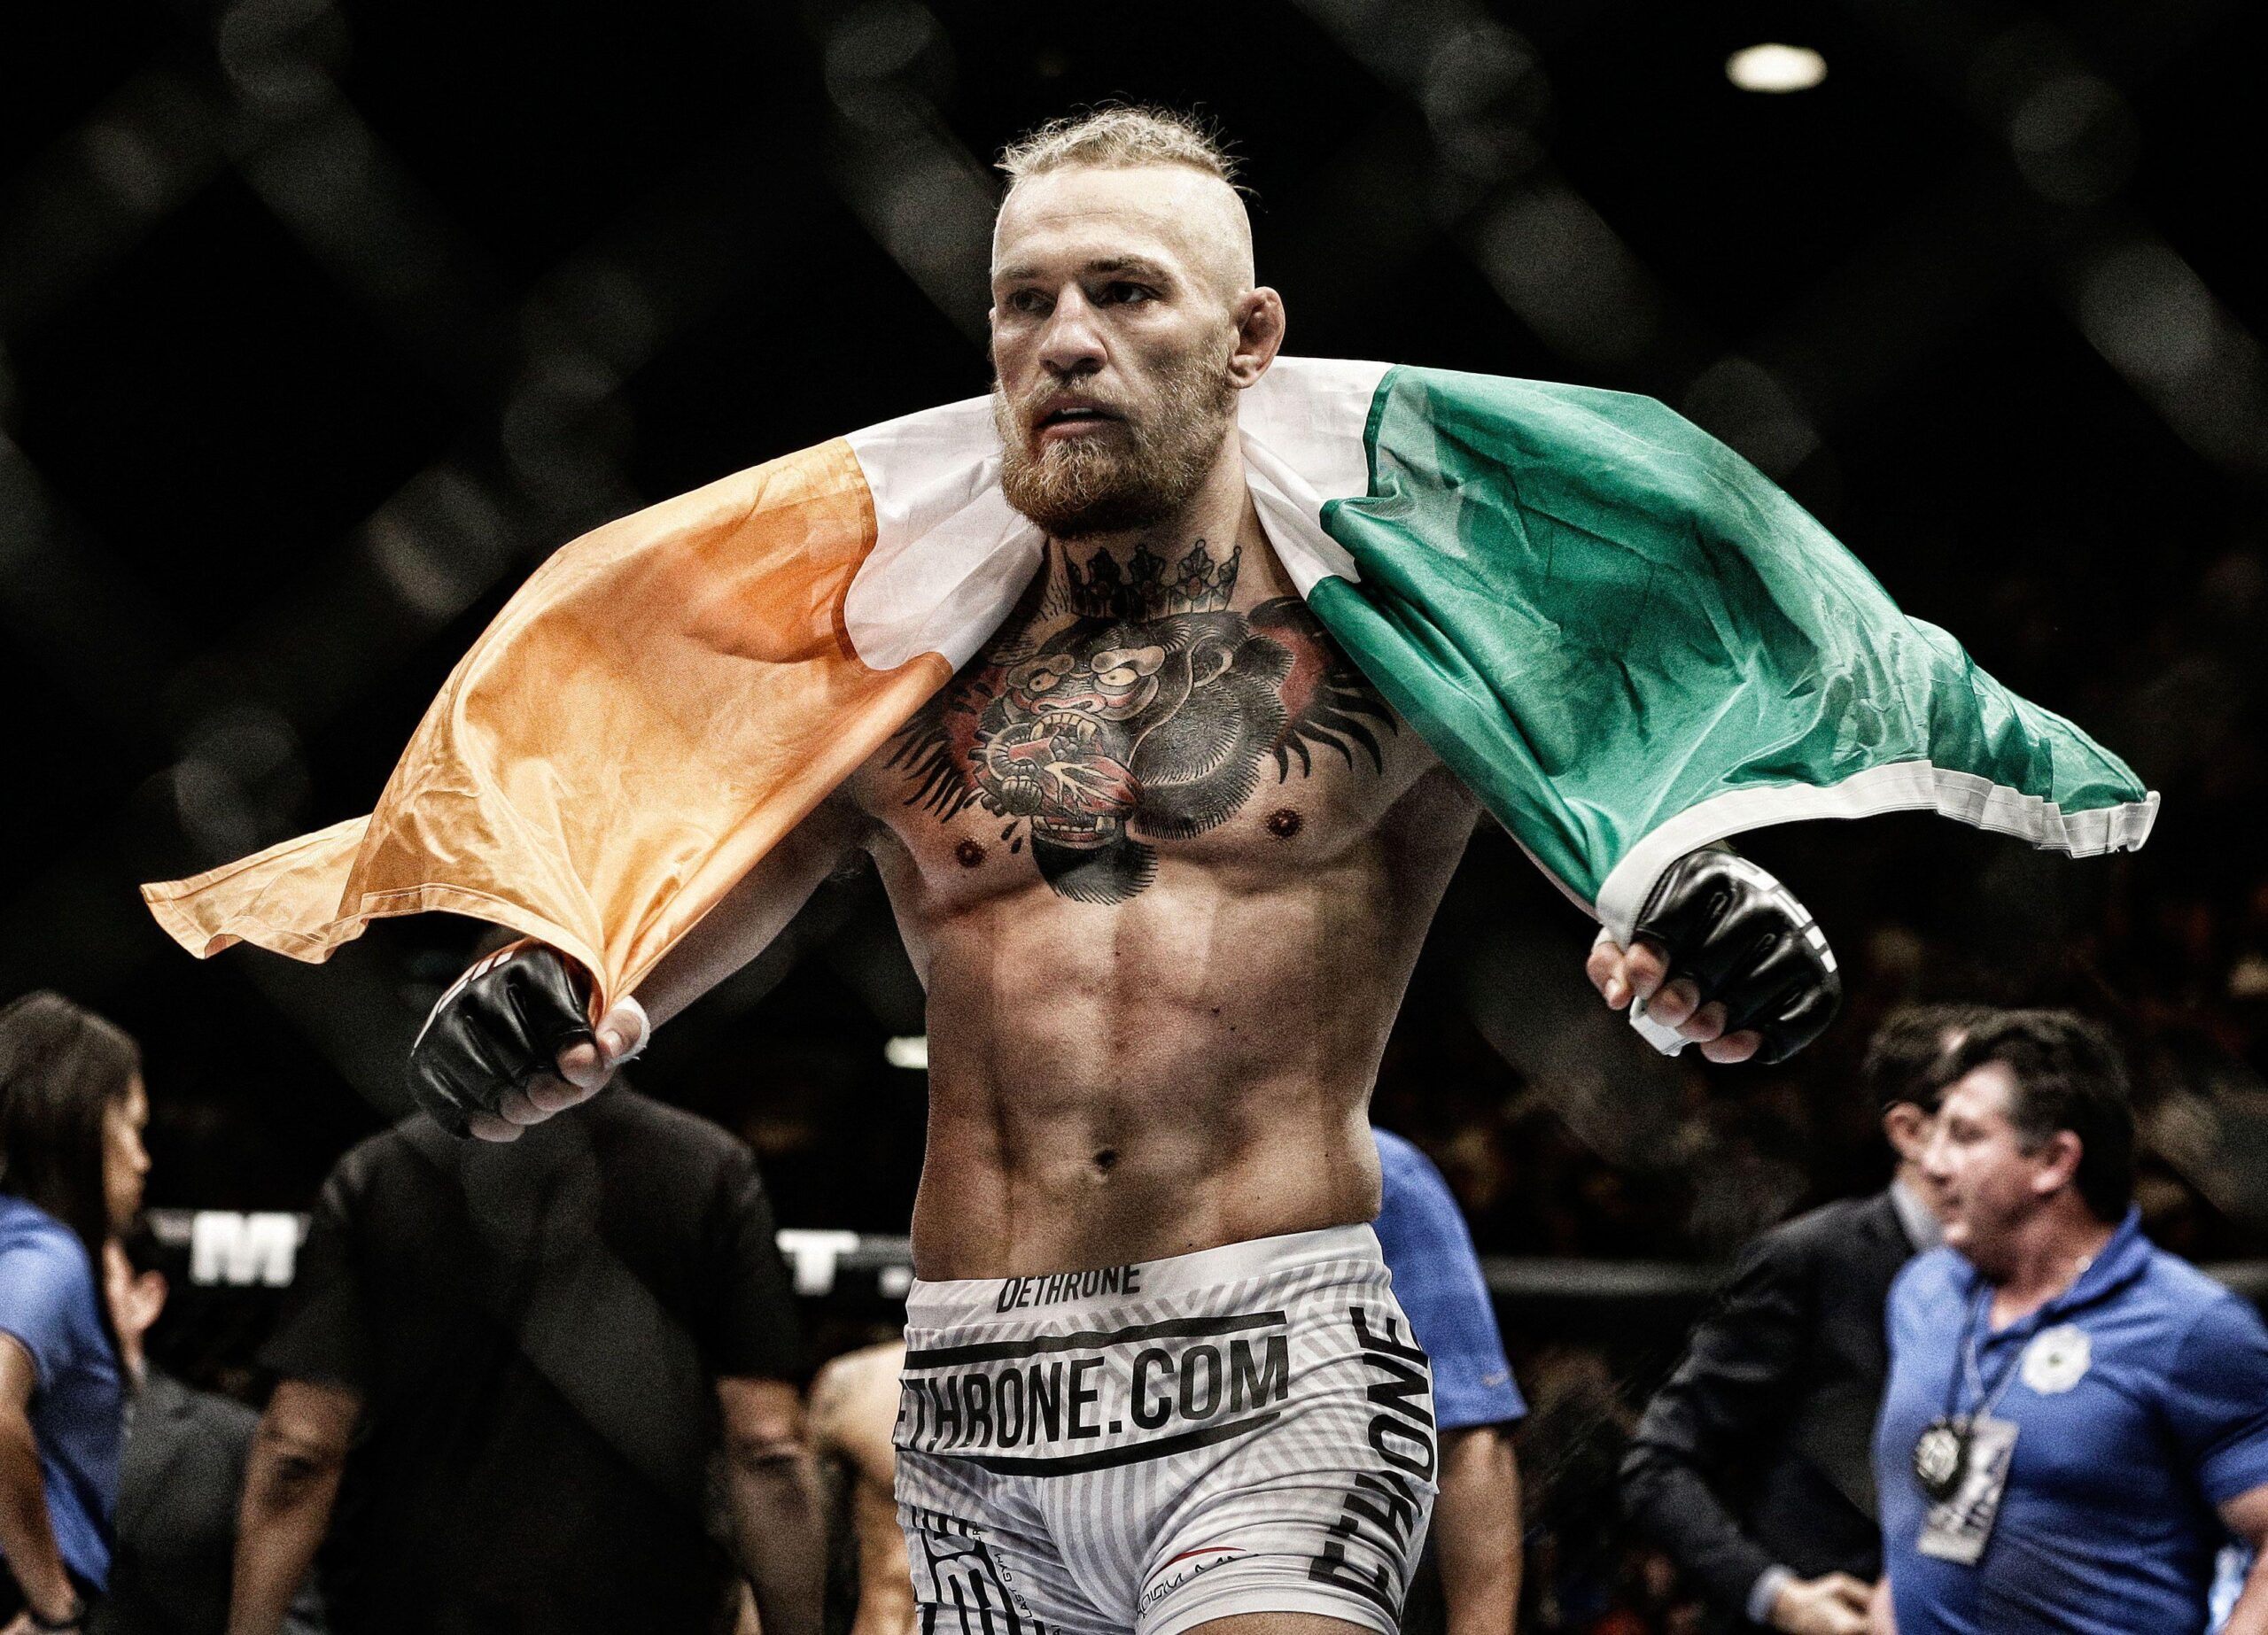 Conor McGregor Phone number, Email Id, Fanmail, Instagram, Tiktok, and Contact Details